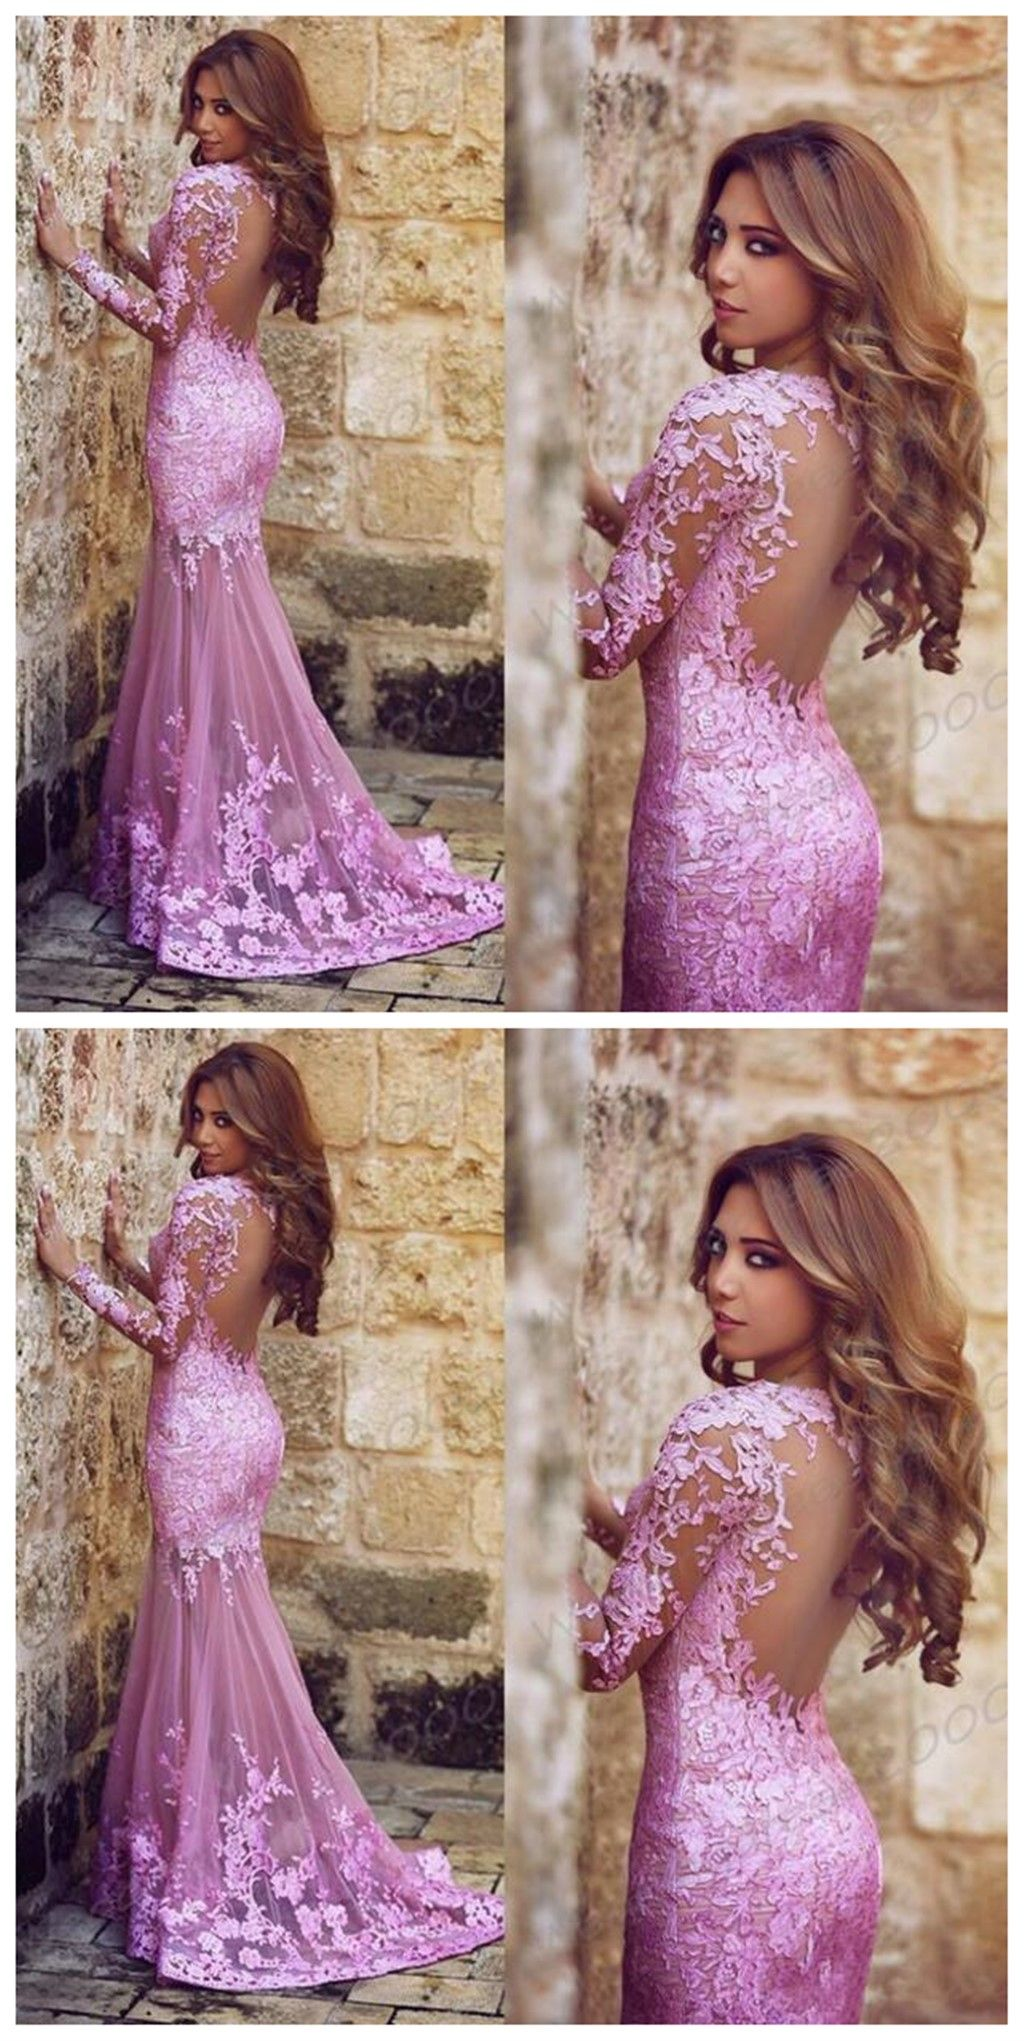 Long sleeve lace prom dresses lilac lace prom dress long prom